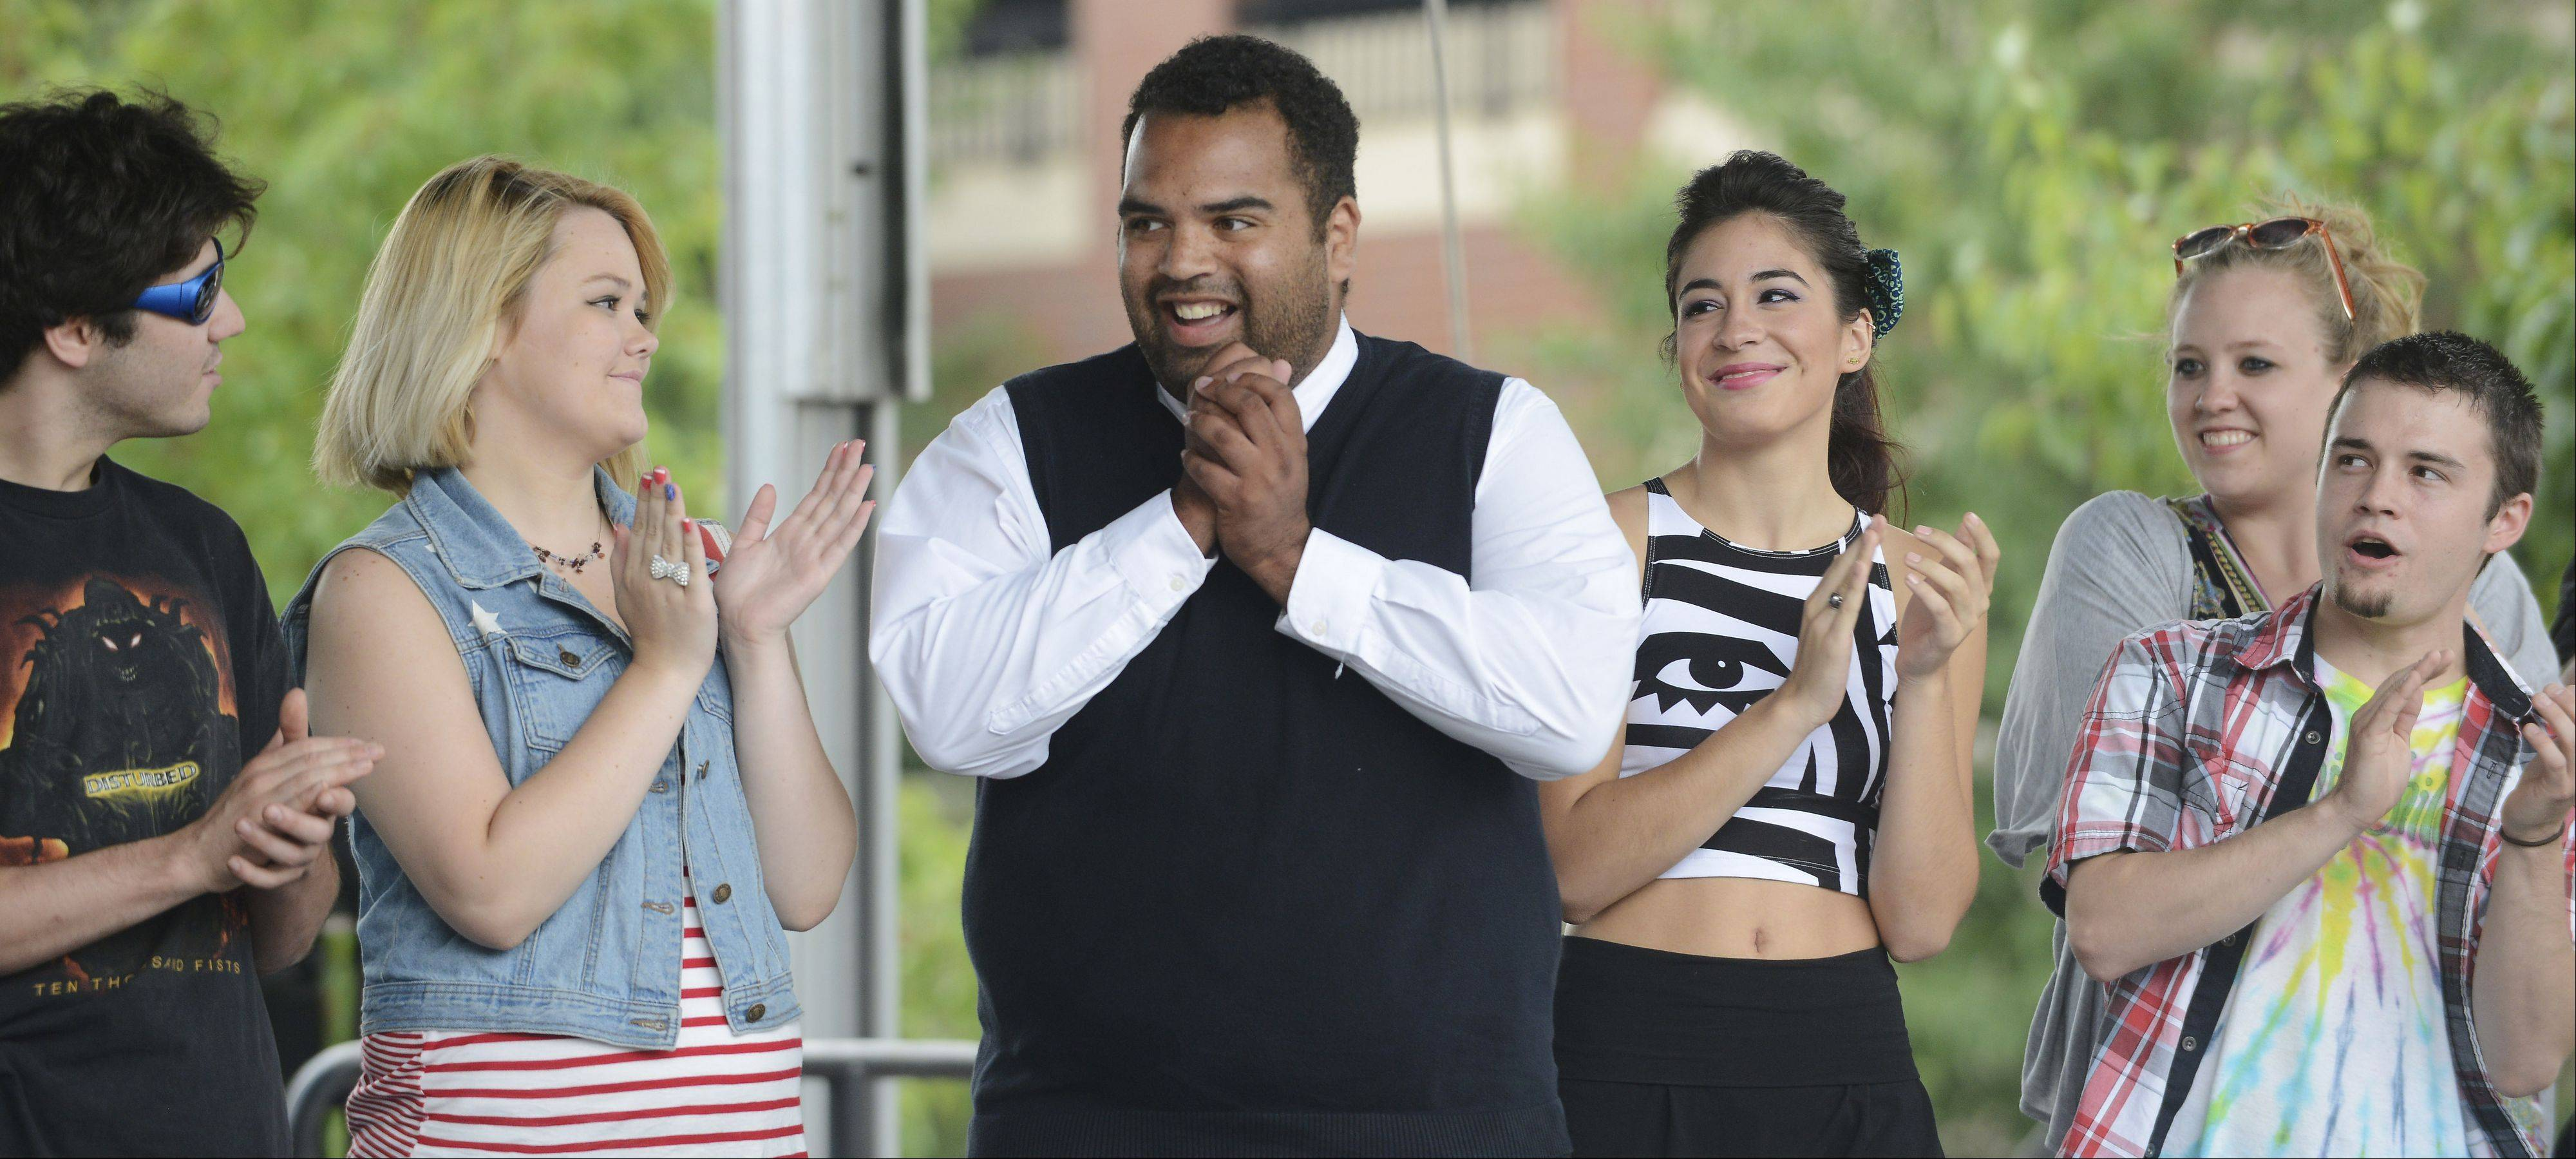 Andrew Johnston, center, reacts after being announced the Fan Favorite of Suburban Chicago's Got Talent in Arlington Heights Saturday.